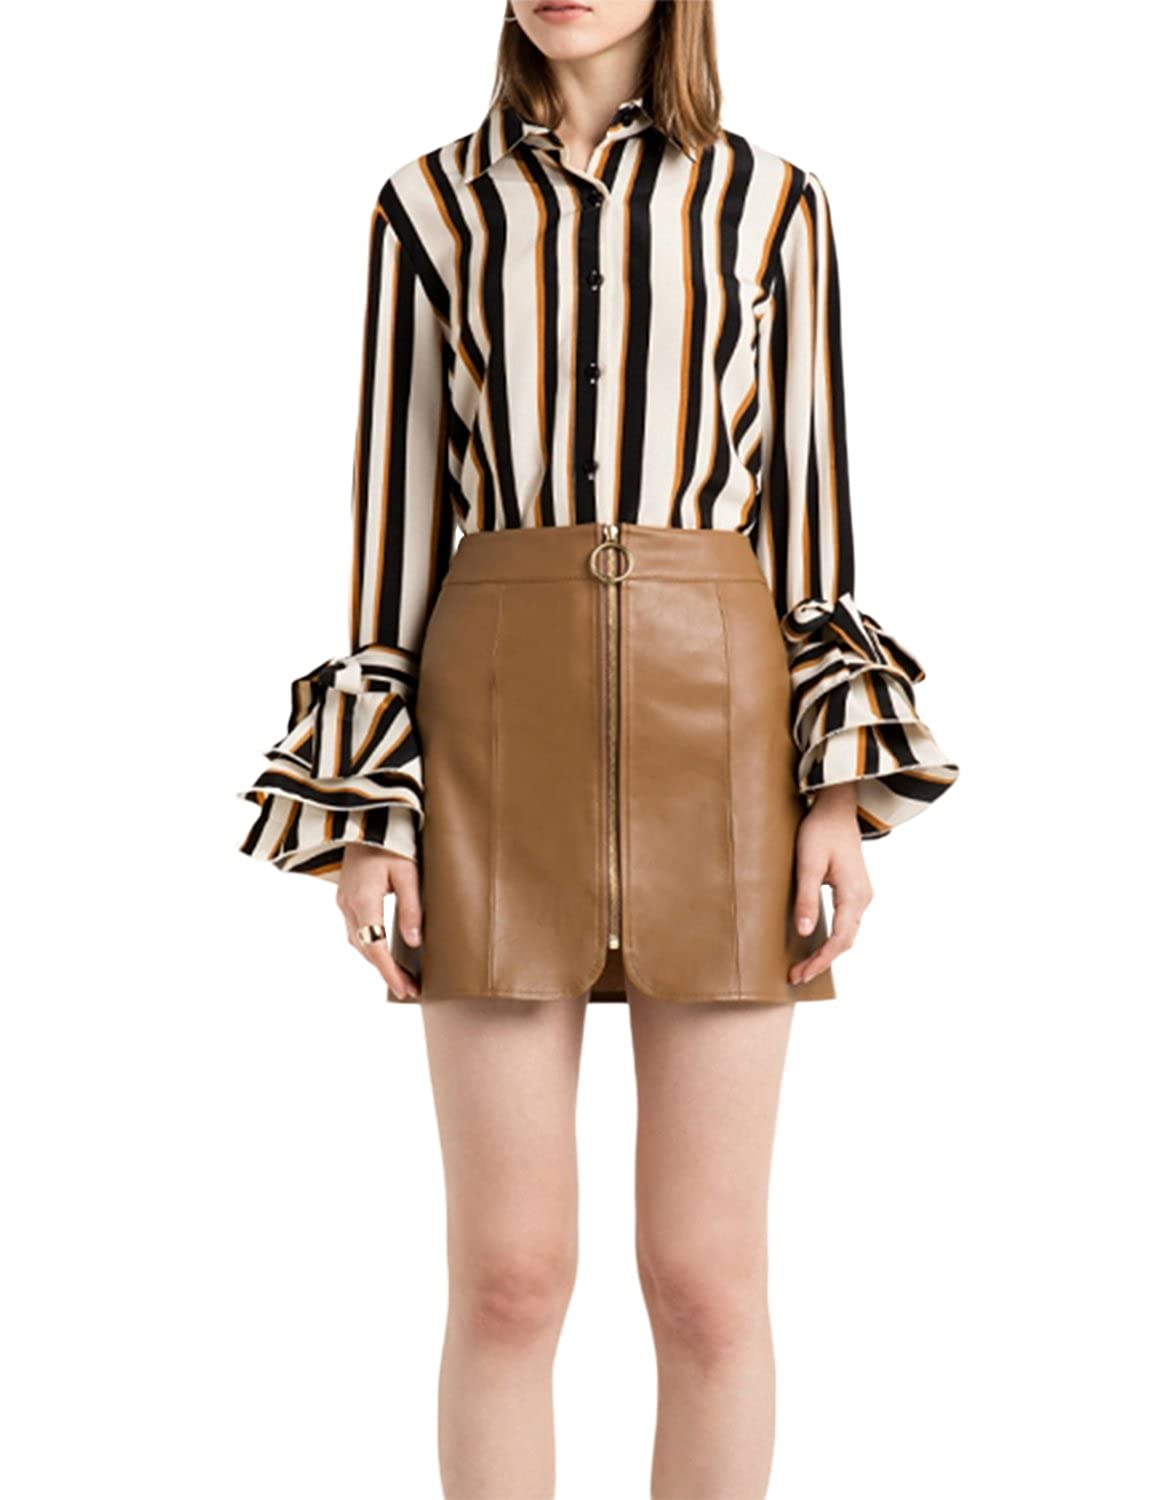 Stripes haoduoyi Womens Casual Stripes Long Flare Sleeve Shirt Blouse